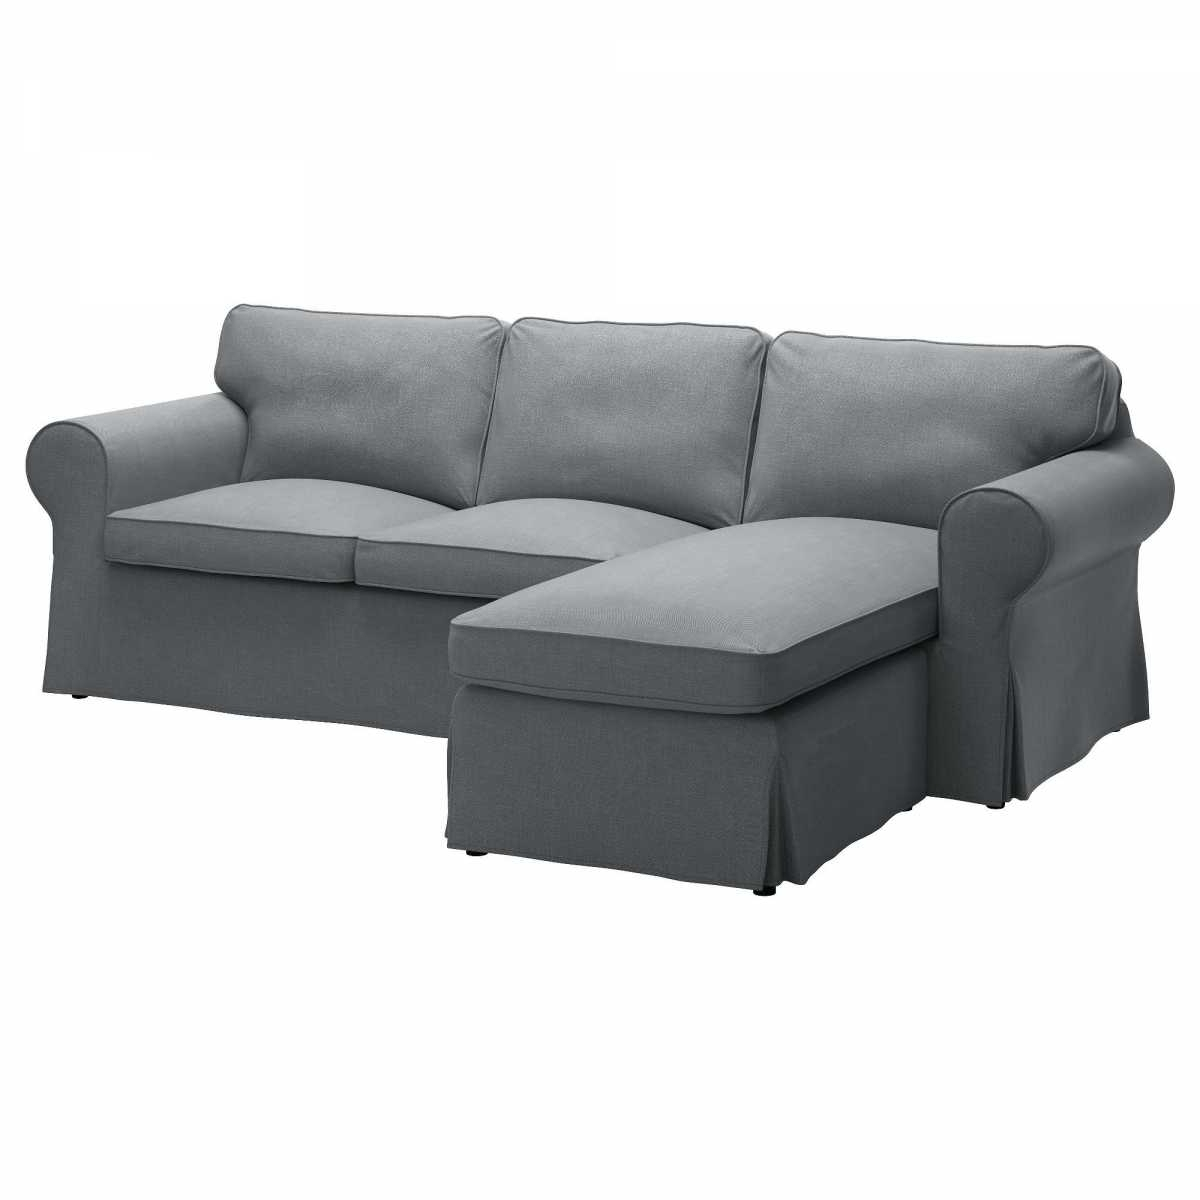 Famous Loveseat : Chaise Loveseat New Small Loveseat With Chaise Lounge With Regard To Loveseats With Chaise (View 5 of 15)